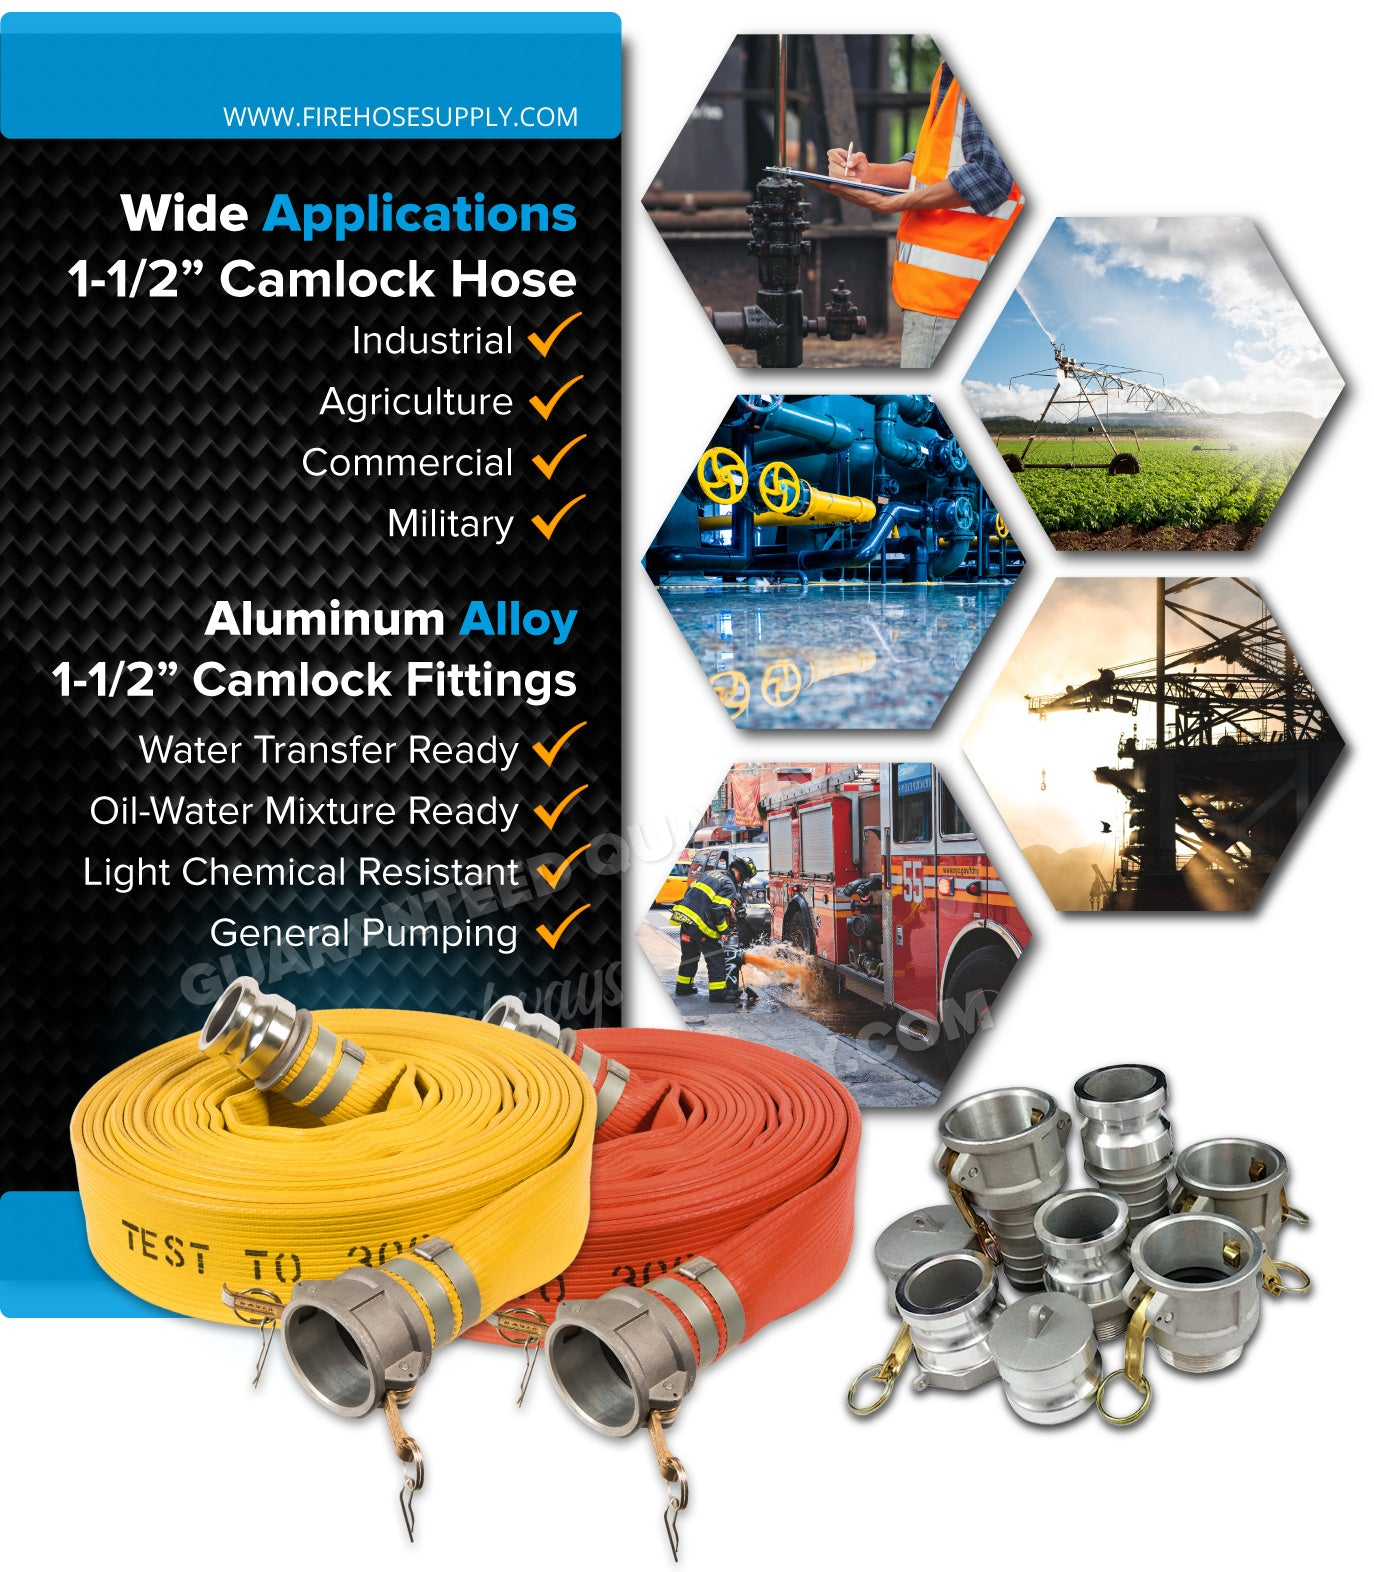 1-1-2 Inch Rubber Camlock Fire Hose For Industrial Applications